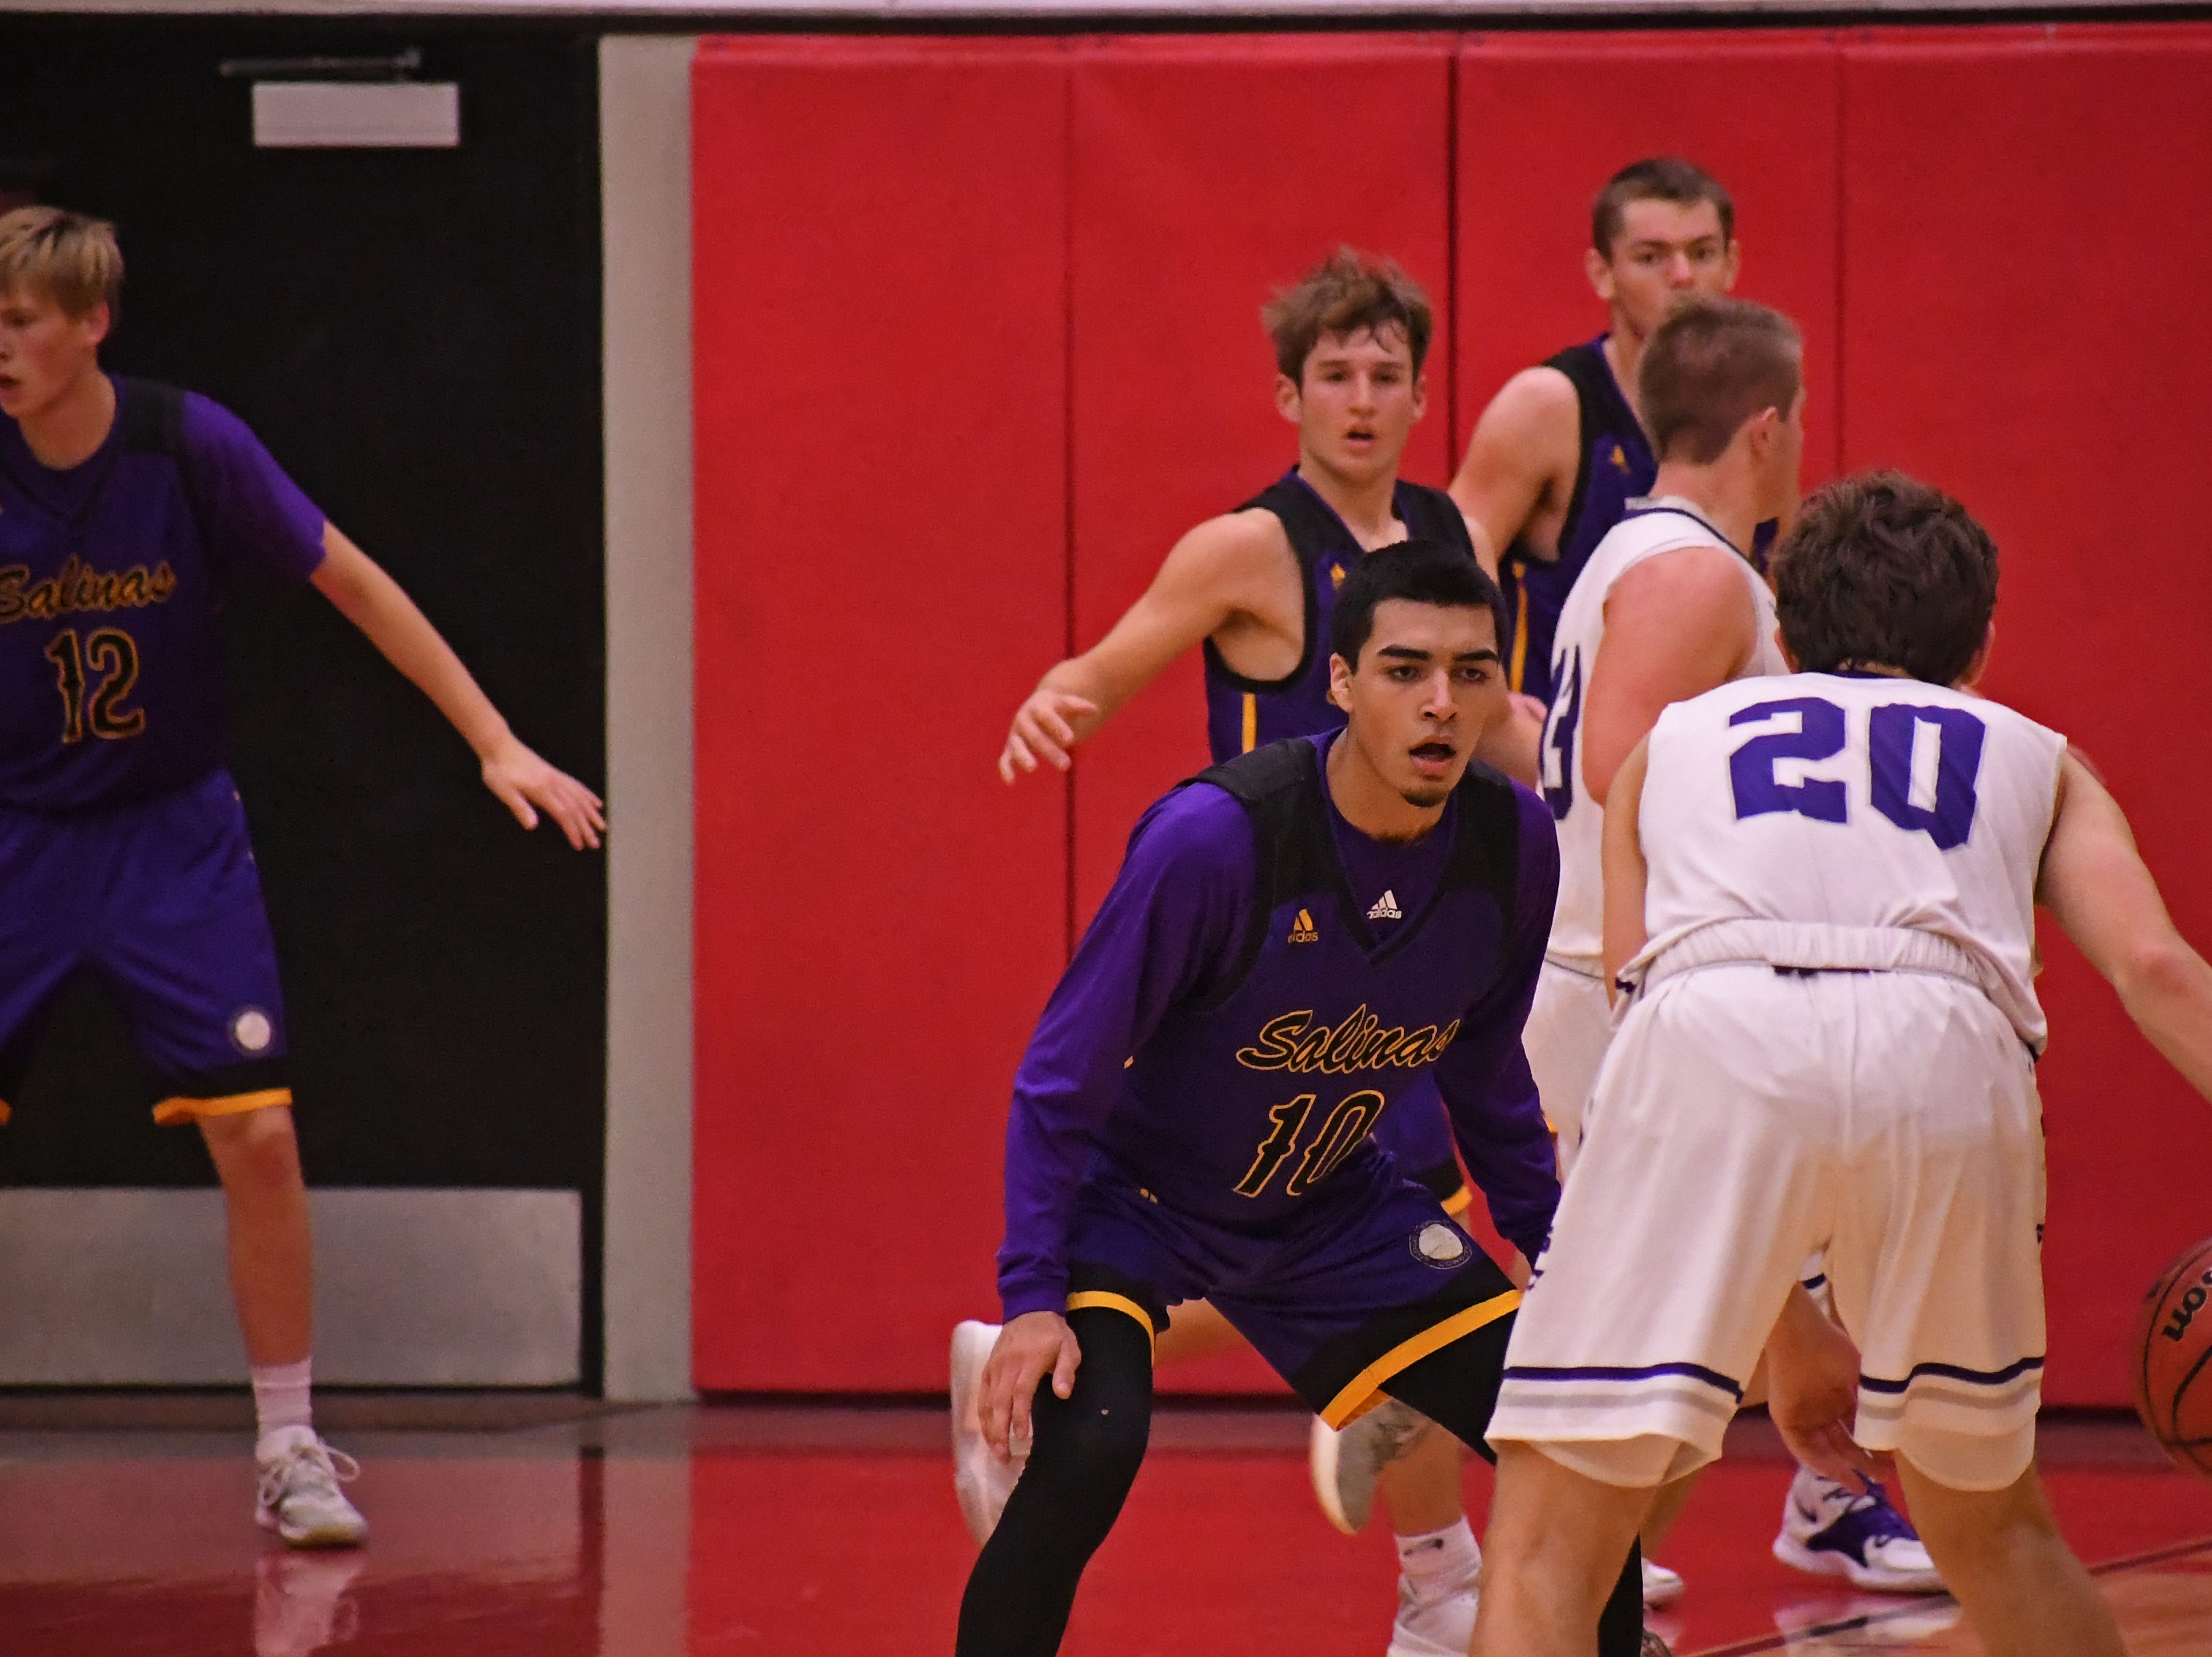 Salinas guard AJ Saldana (10) stays in front of his assignment on defense.